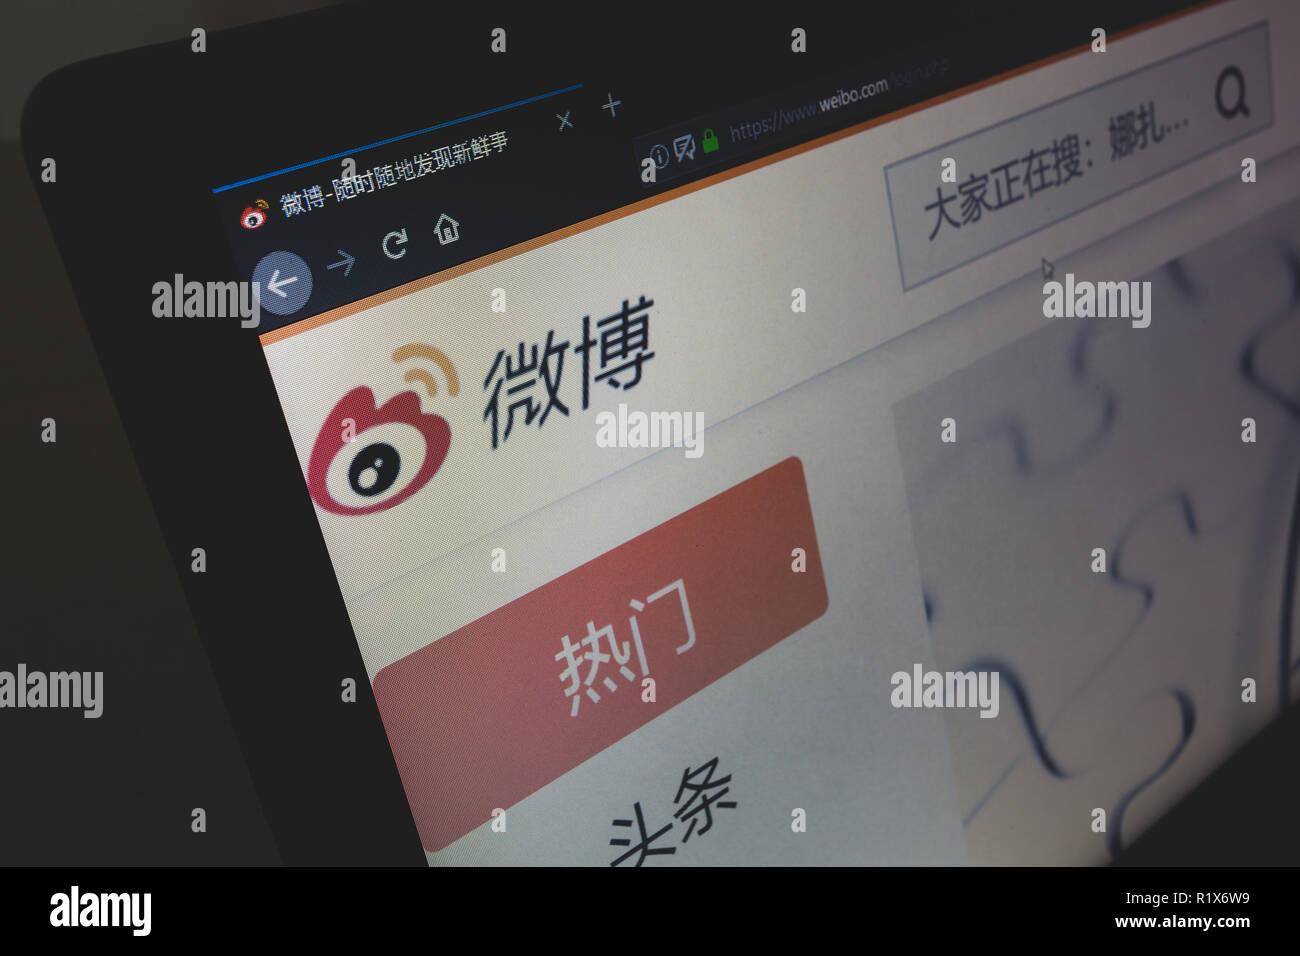 Weibo, Chinese social media platform logo on its website is shown on a laptop computer screen - Stock Image